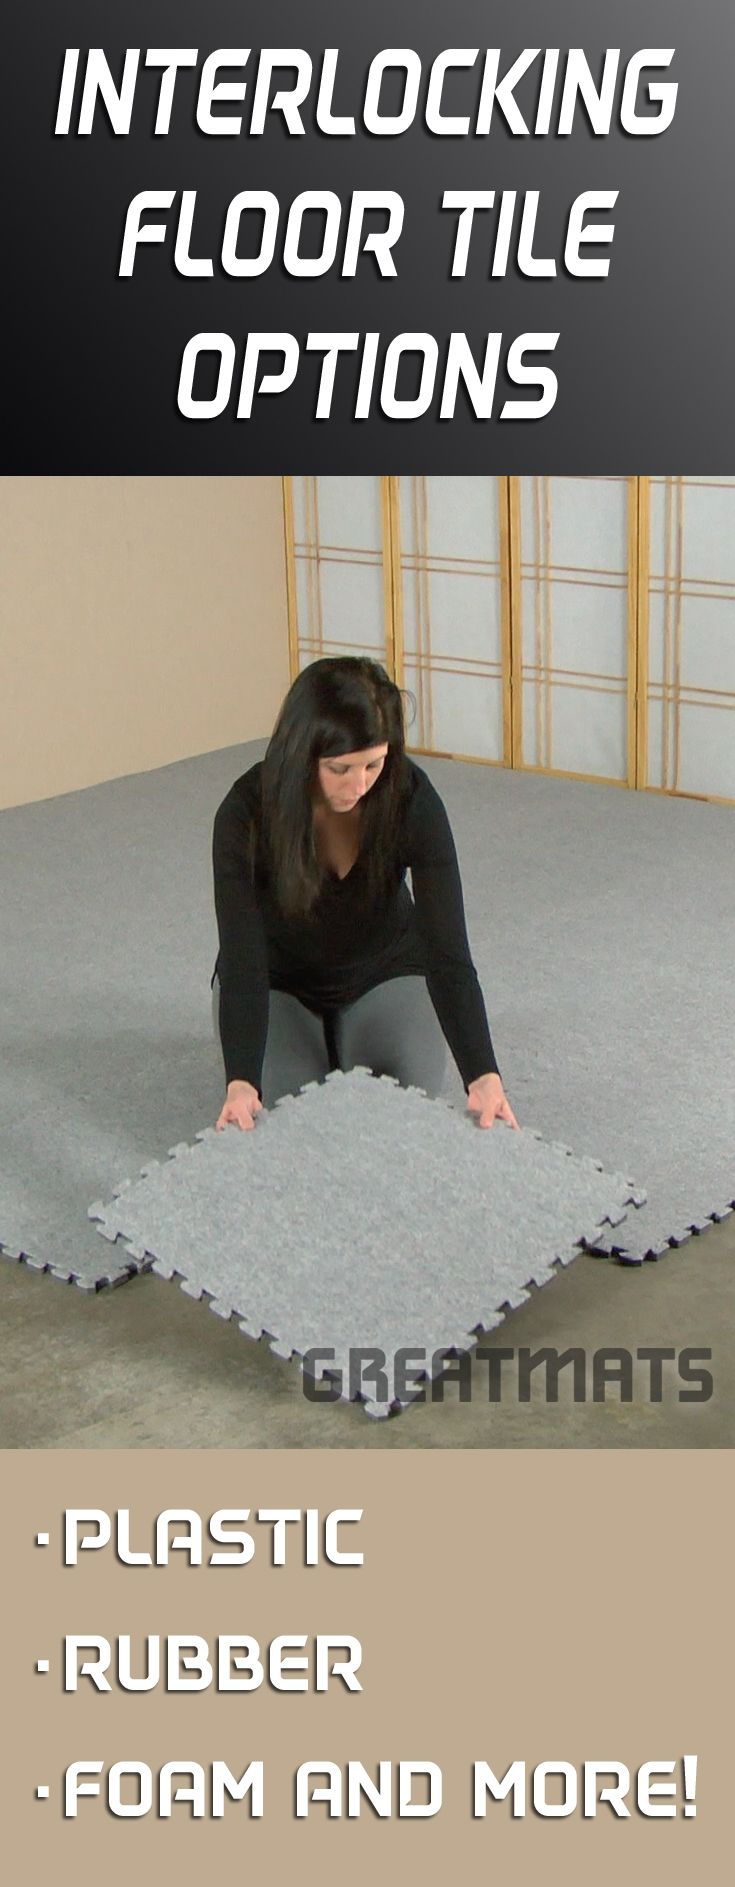 Greatmats has one of the largest selections of interlocking floor find interlocking floor mats and interlocking floor tiles in rubber and foam material use interlocking tiles for floors in basements garages and gyms dailygadgetfo Images